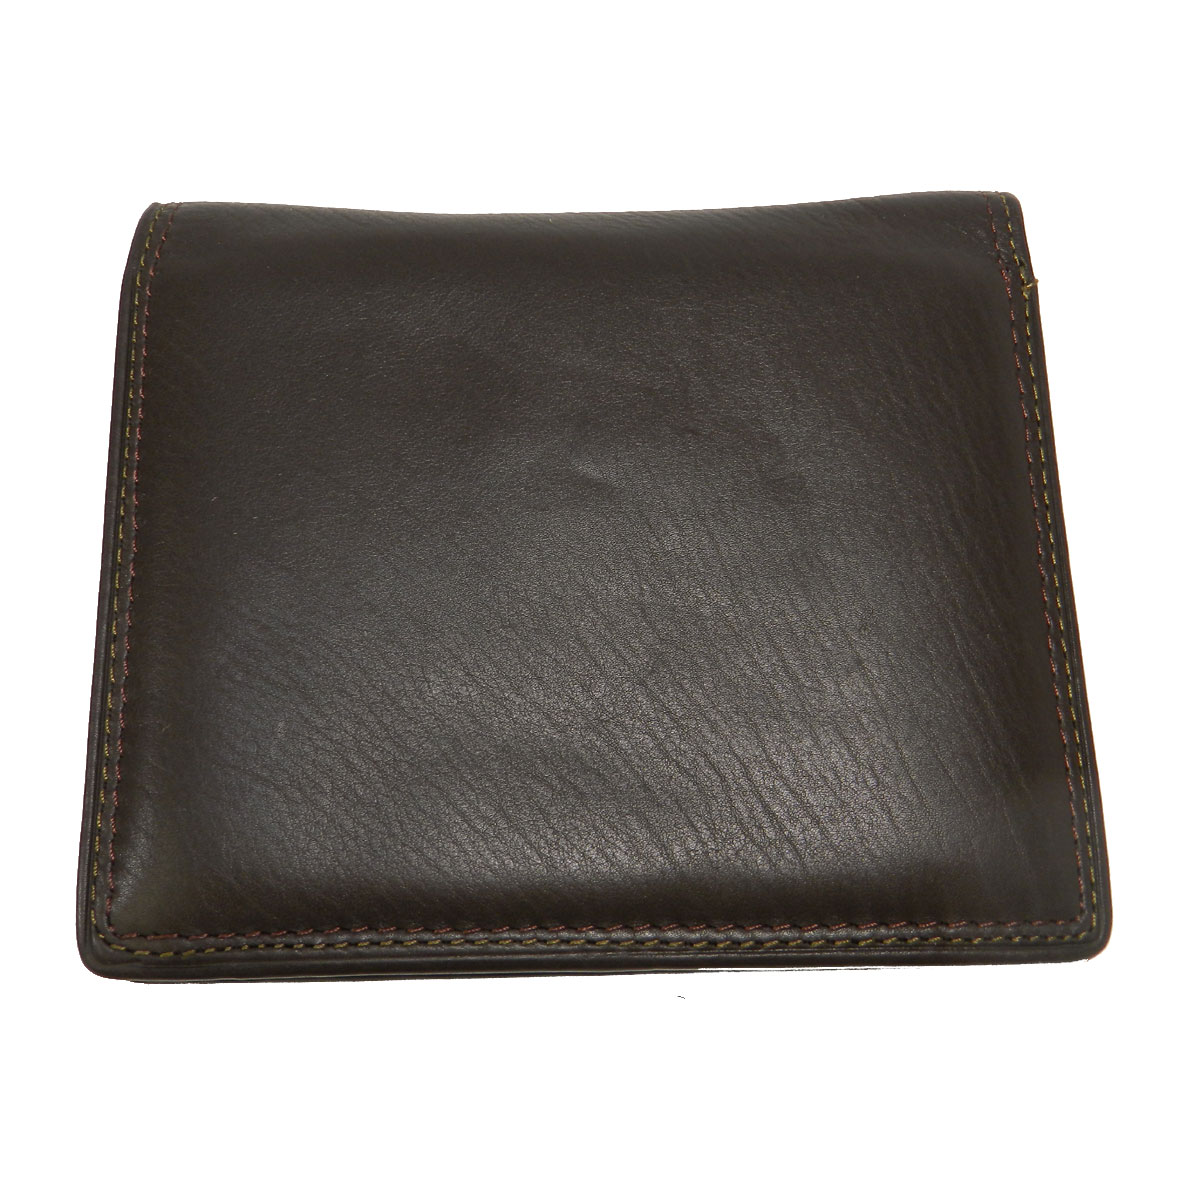 GIANNI VALENTINO leather wallet 2 fold wallet (purse and) leather unisex